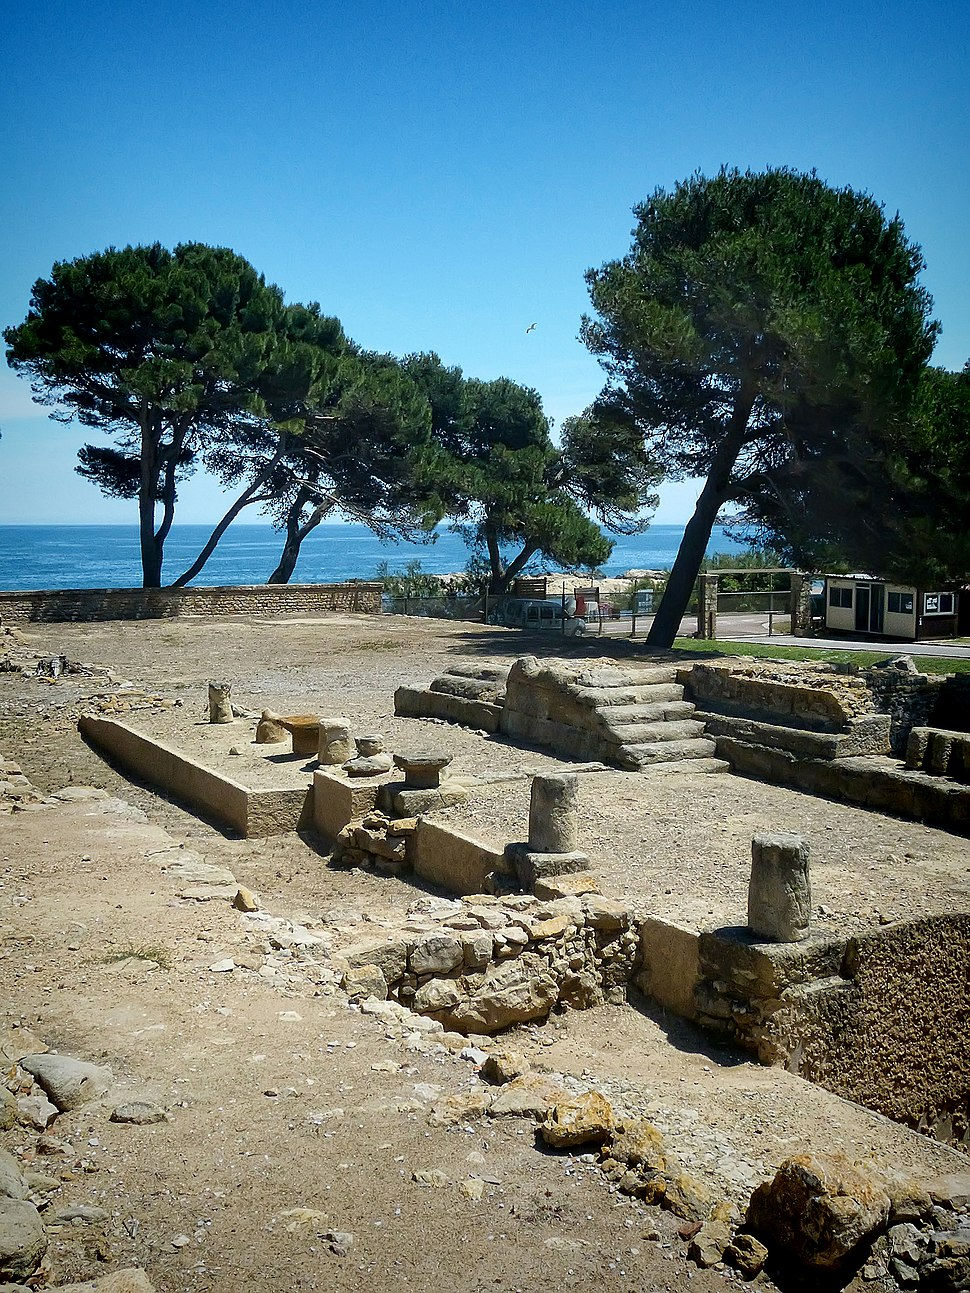 Remains of Greek temple in the ancient Greek city of Neapolis at the archaeological site of Empúries